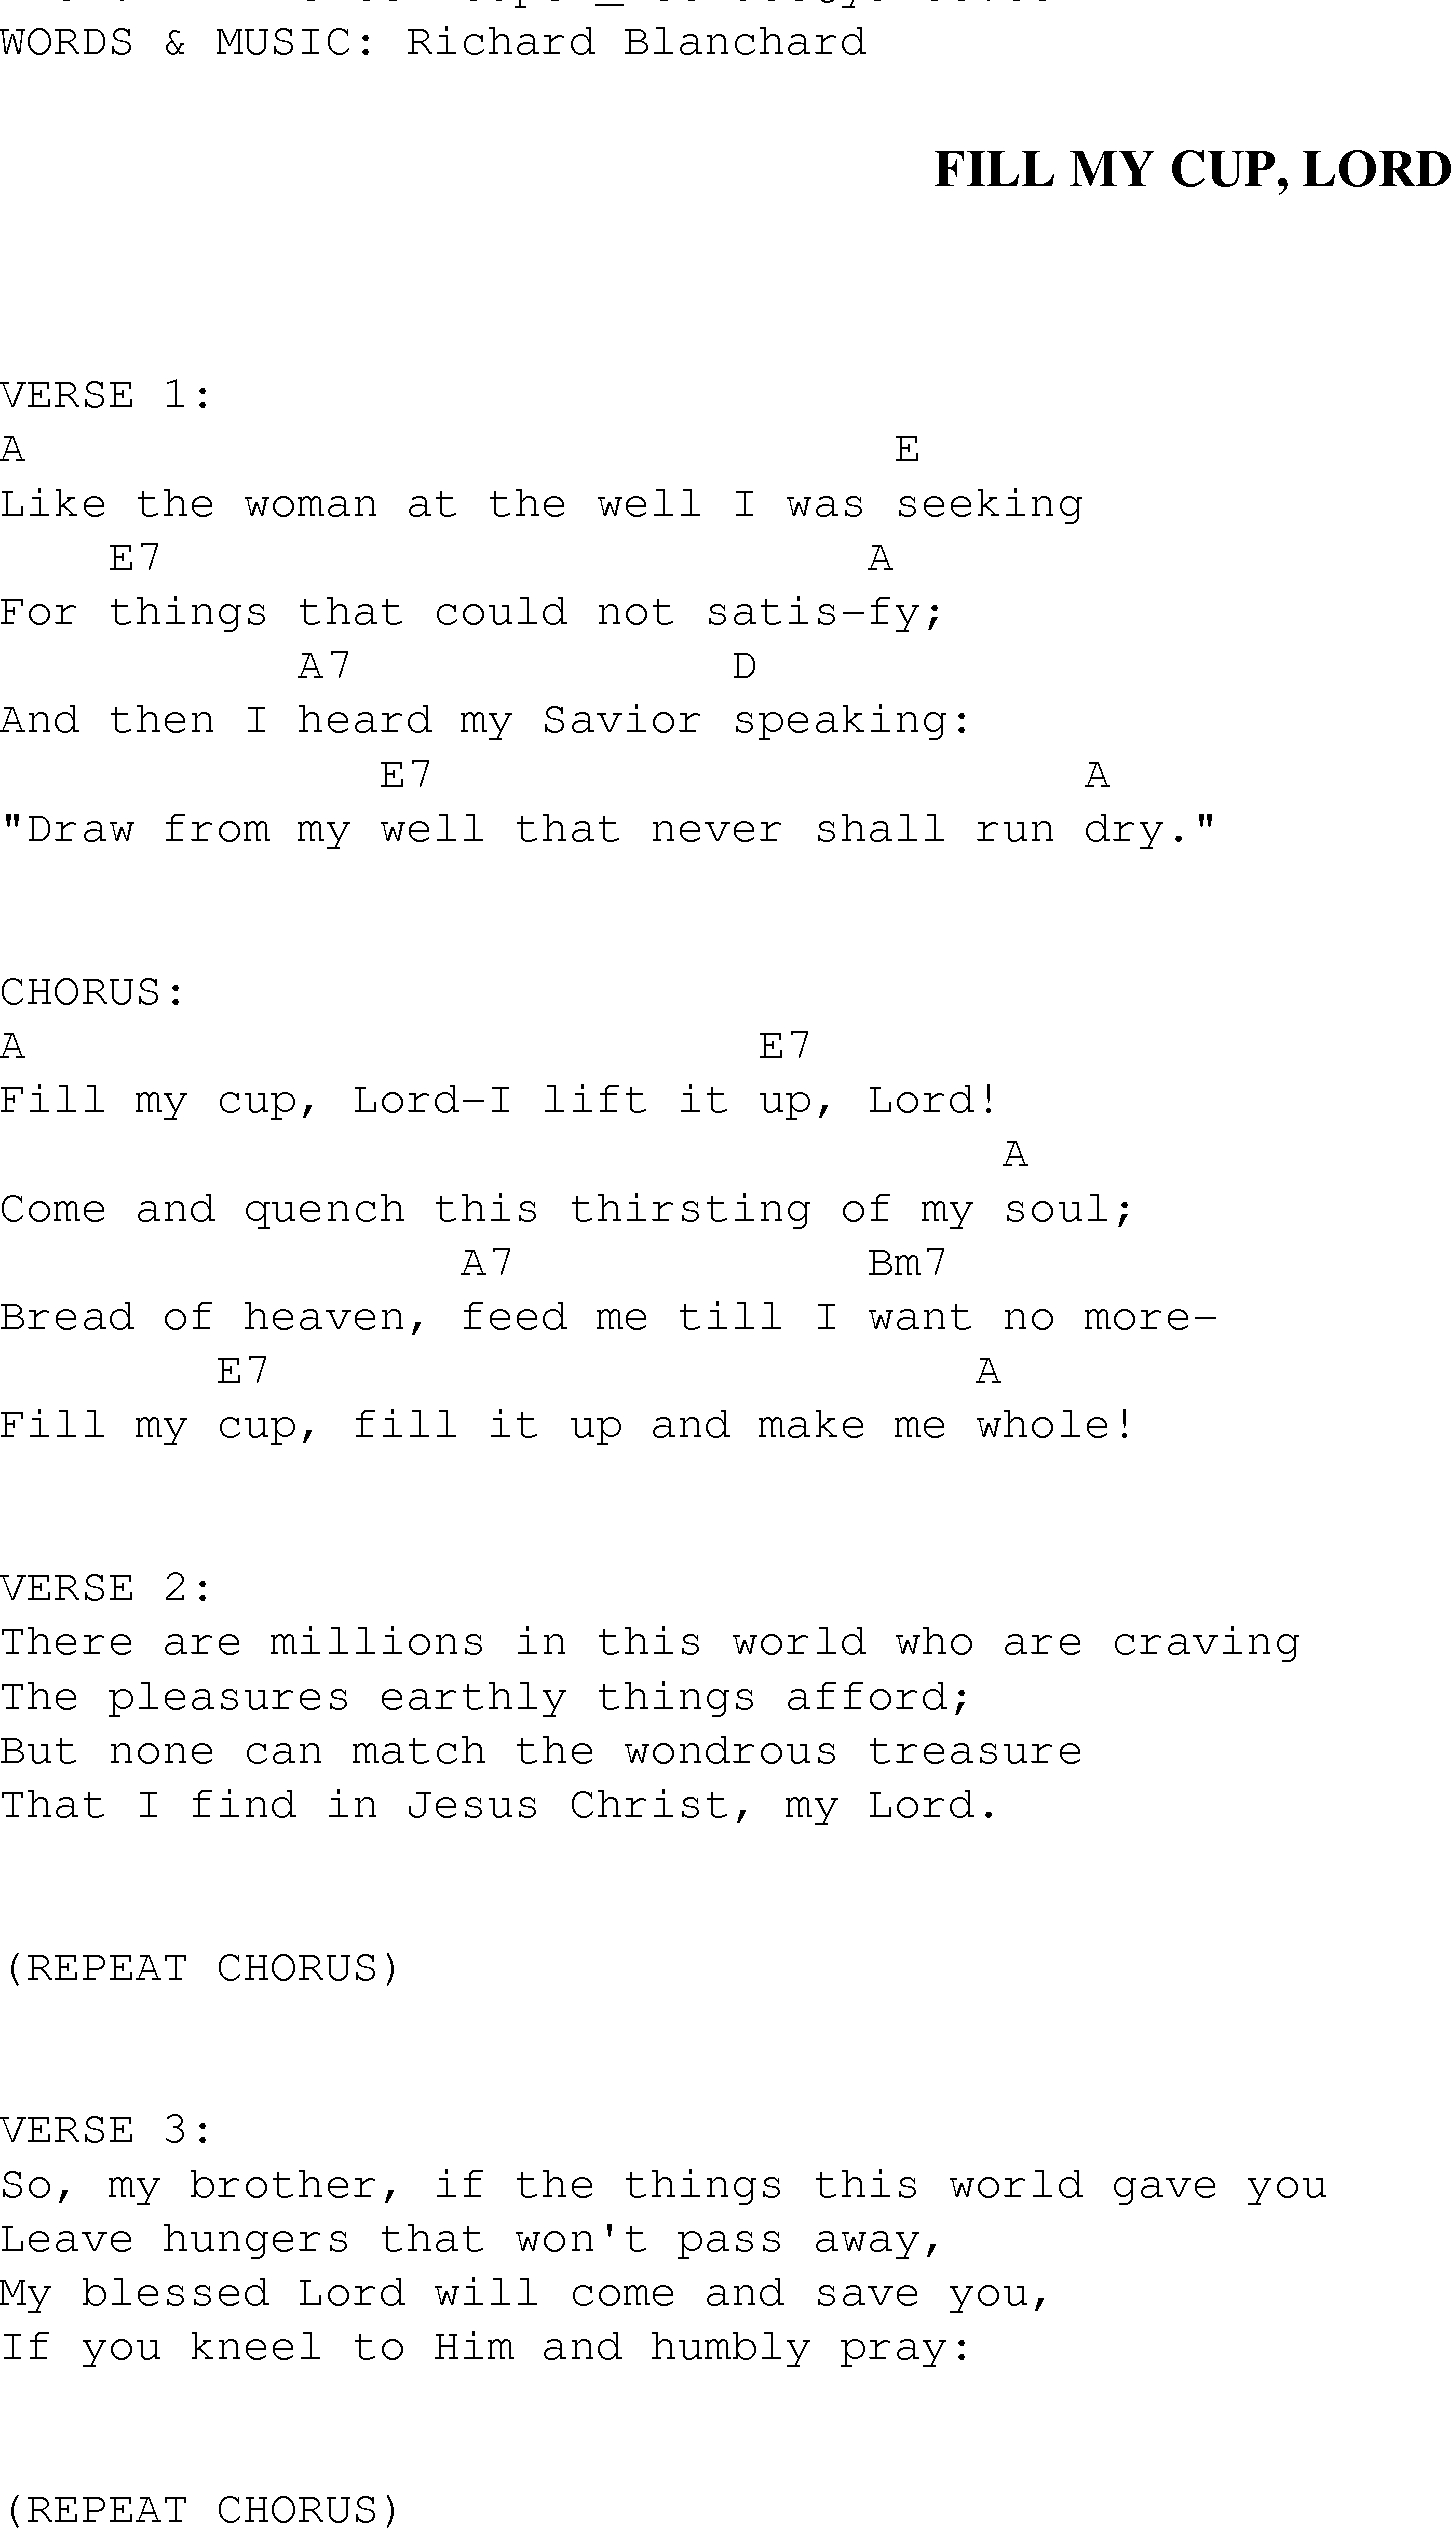 This Is Gospel Chords Fill My Cup Lord Christian Gospel Song Lyrics And Chords